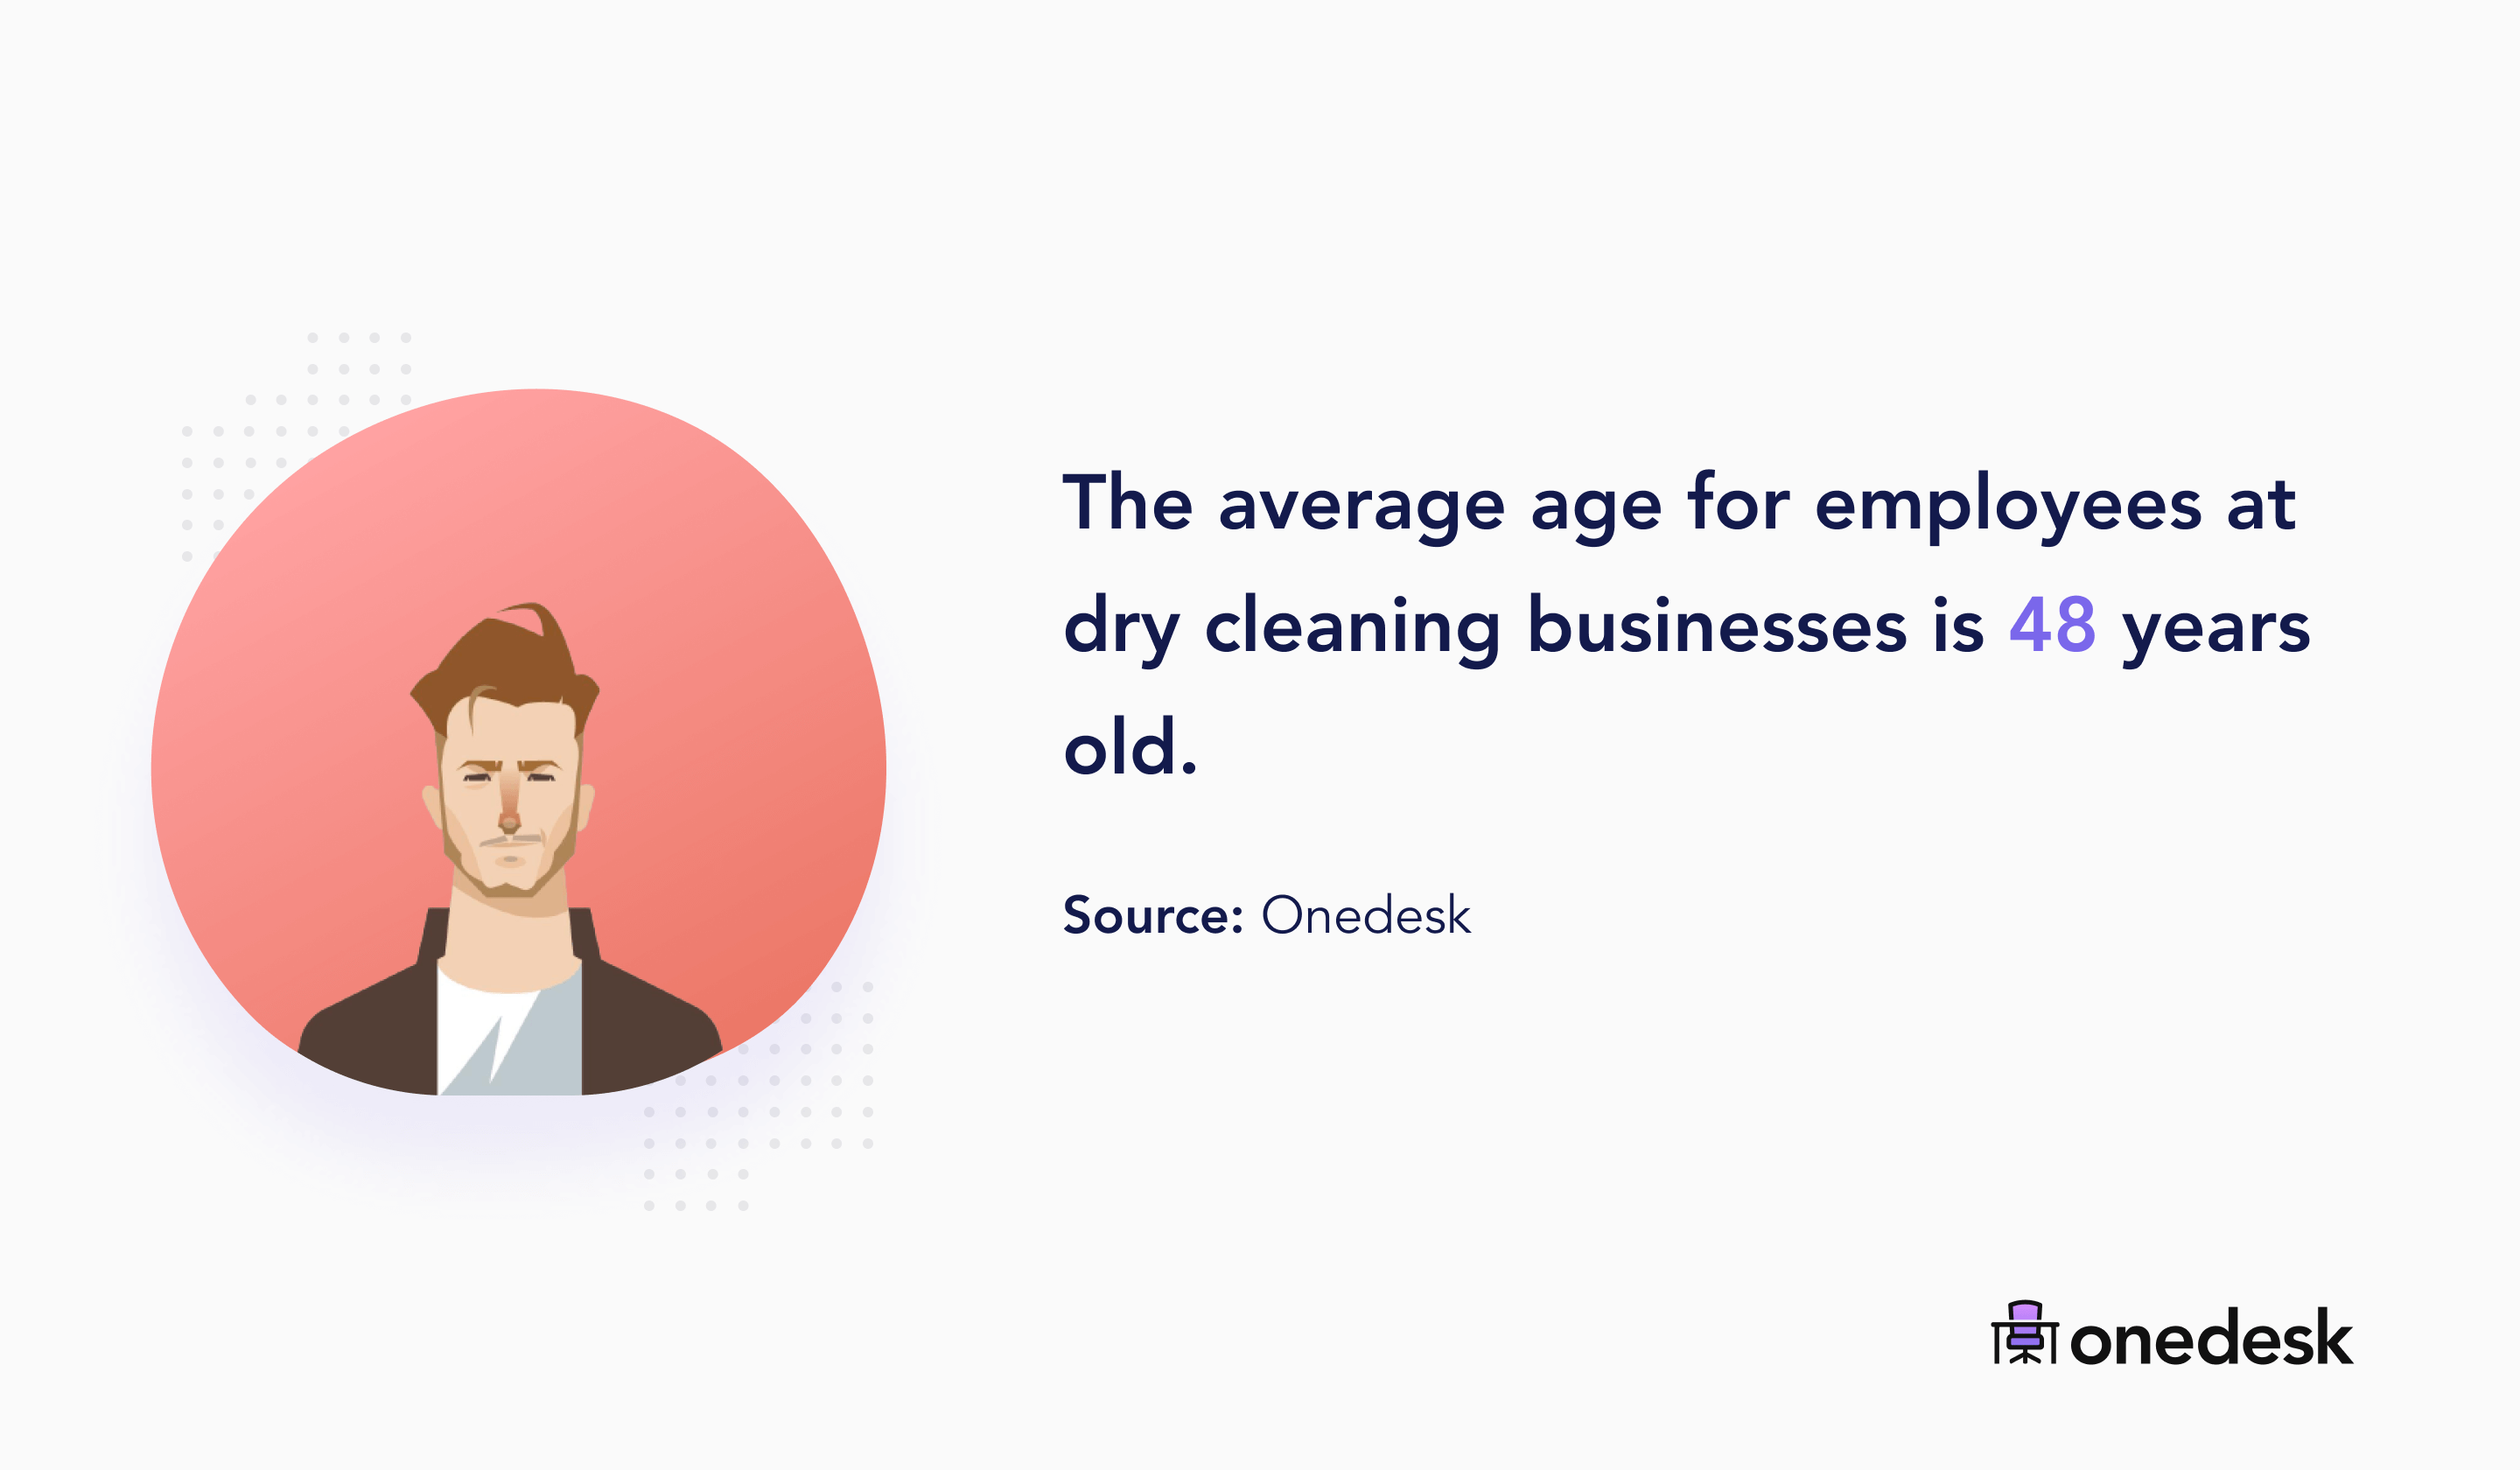 average employee age in dry cleaning businesses